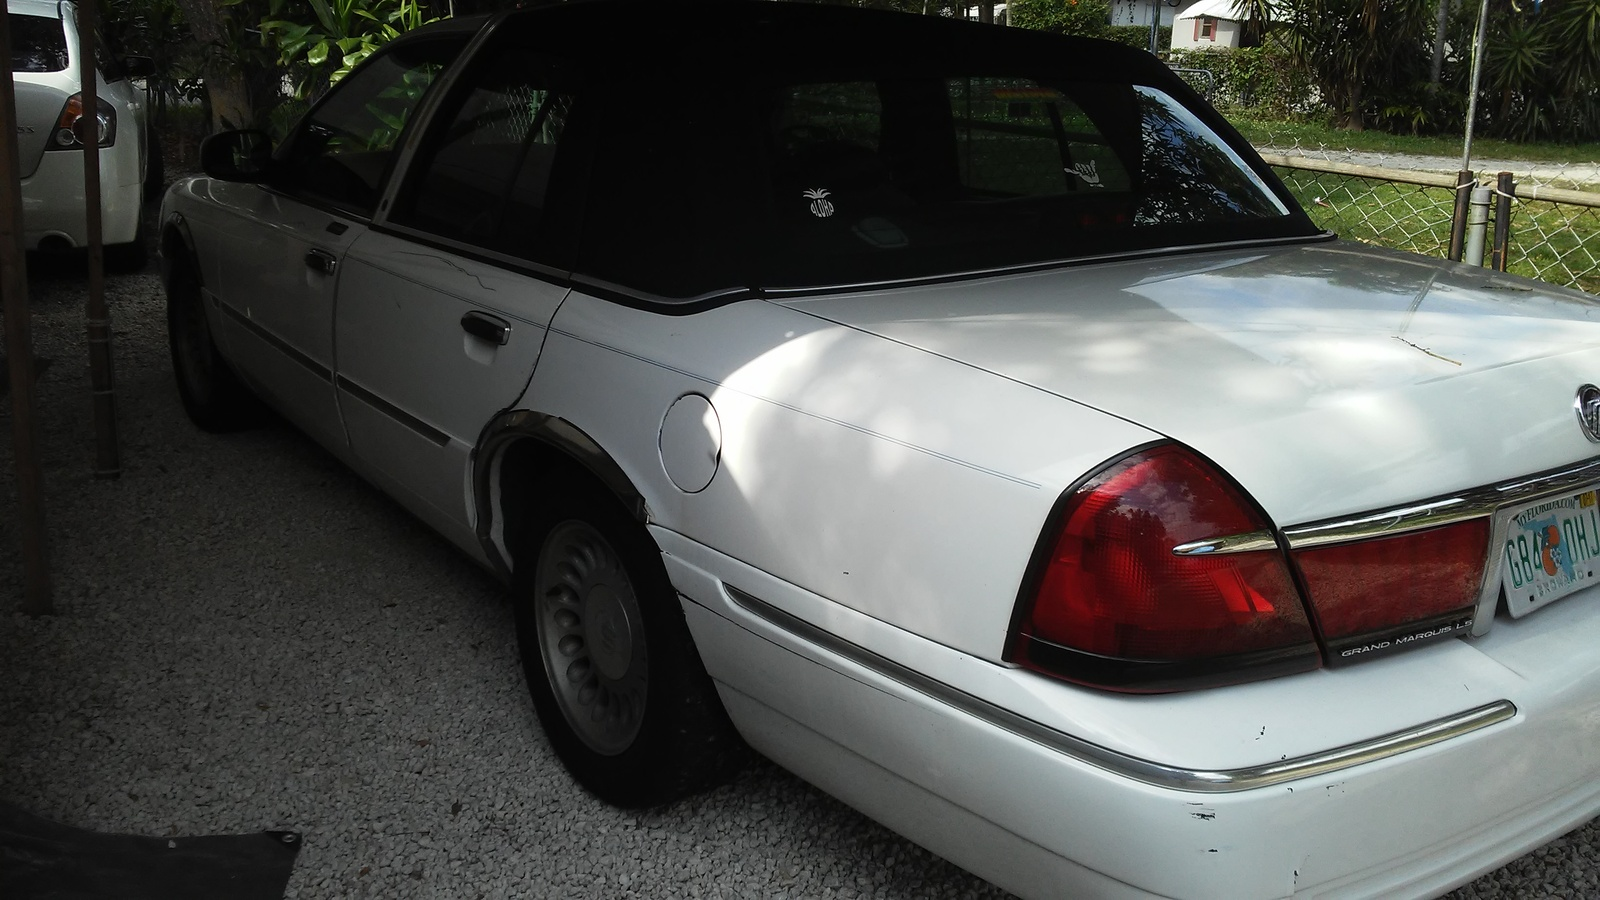 Picture of 2000 mercury grand marquis exterior gallery_worthy